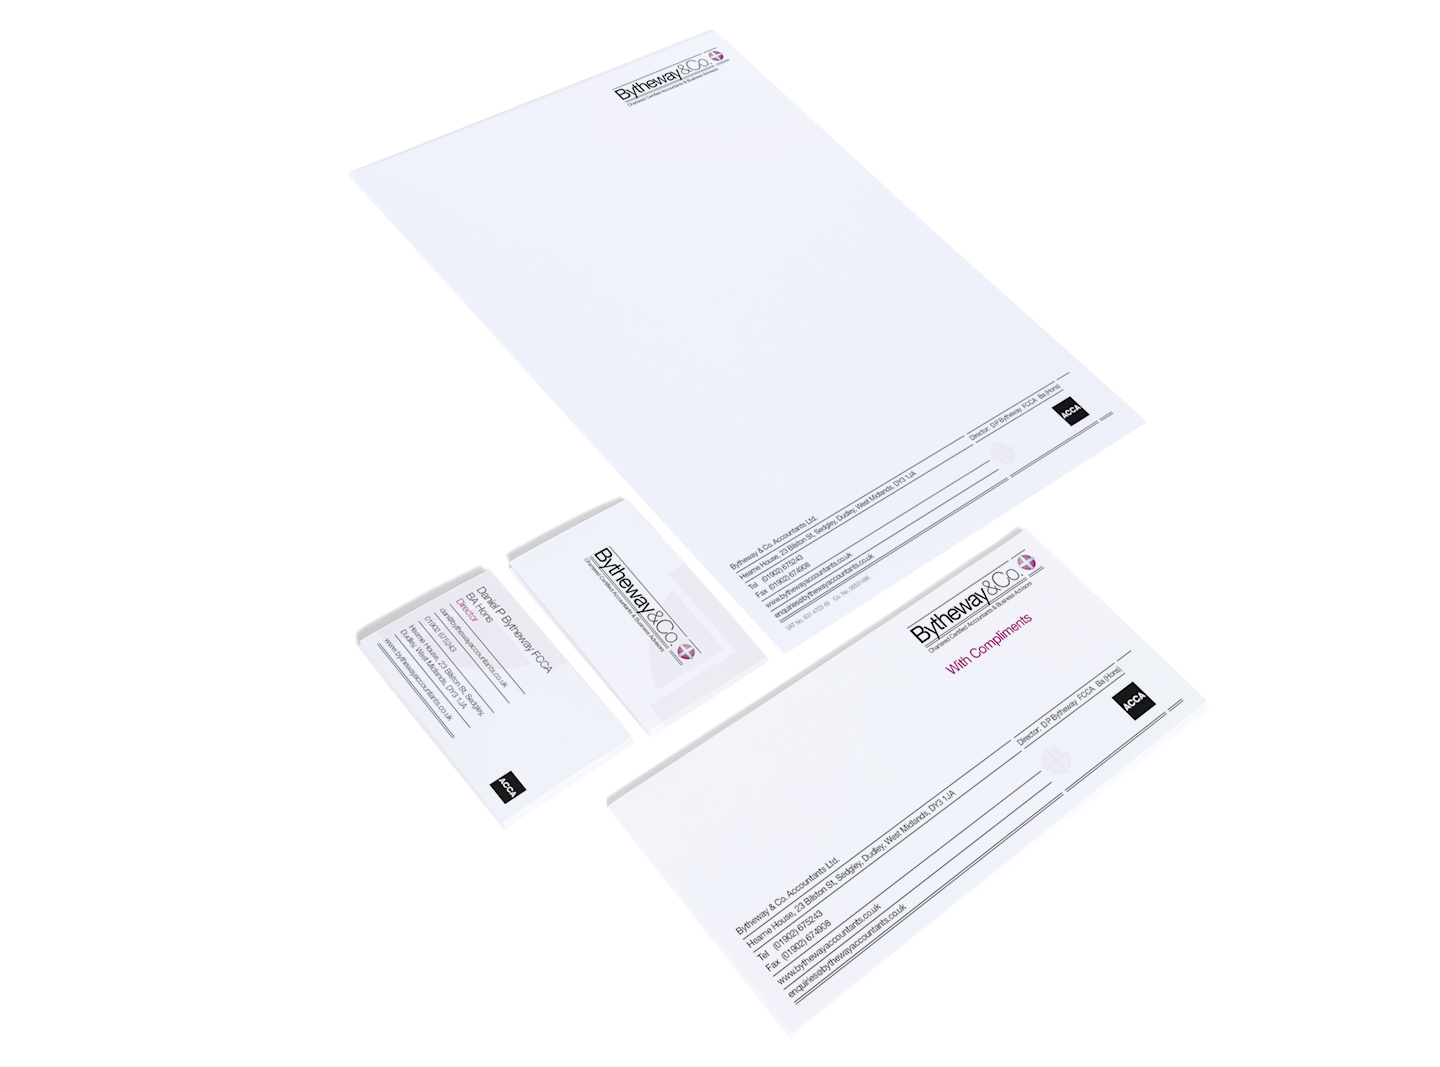 https://rusyndesign.co.uk/wp-content/uploads/2021/02/Bytheway-stationary-1.png